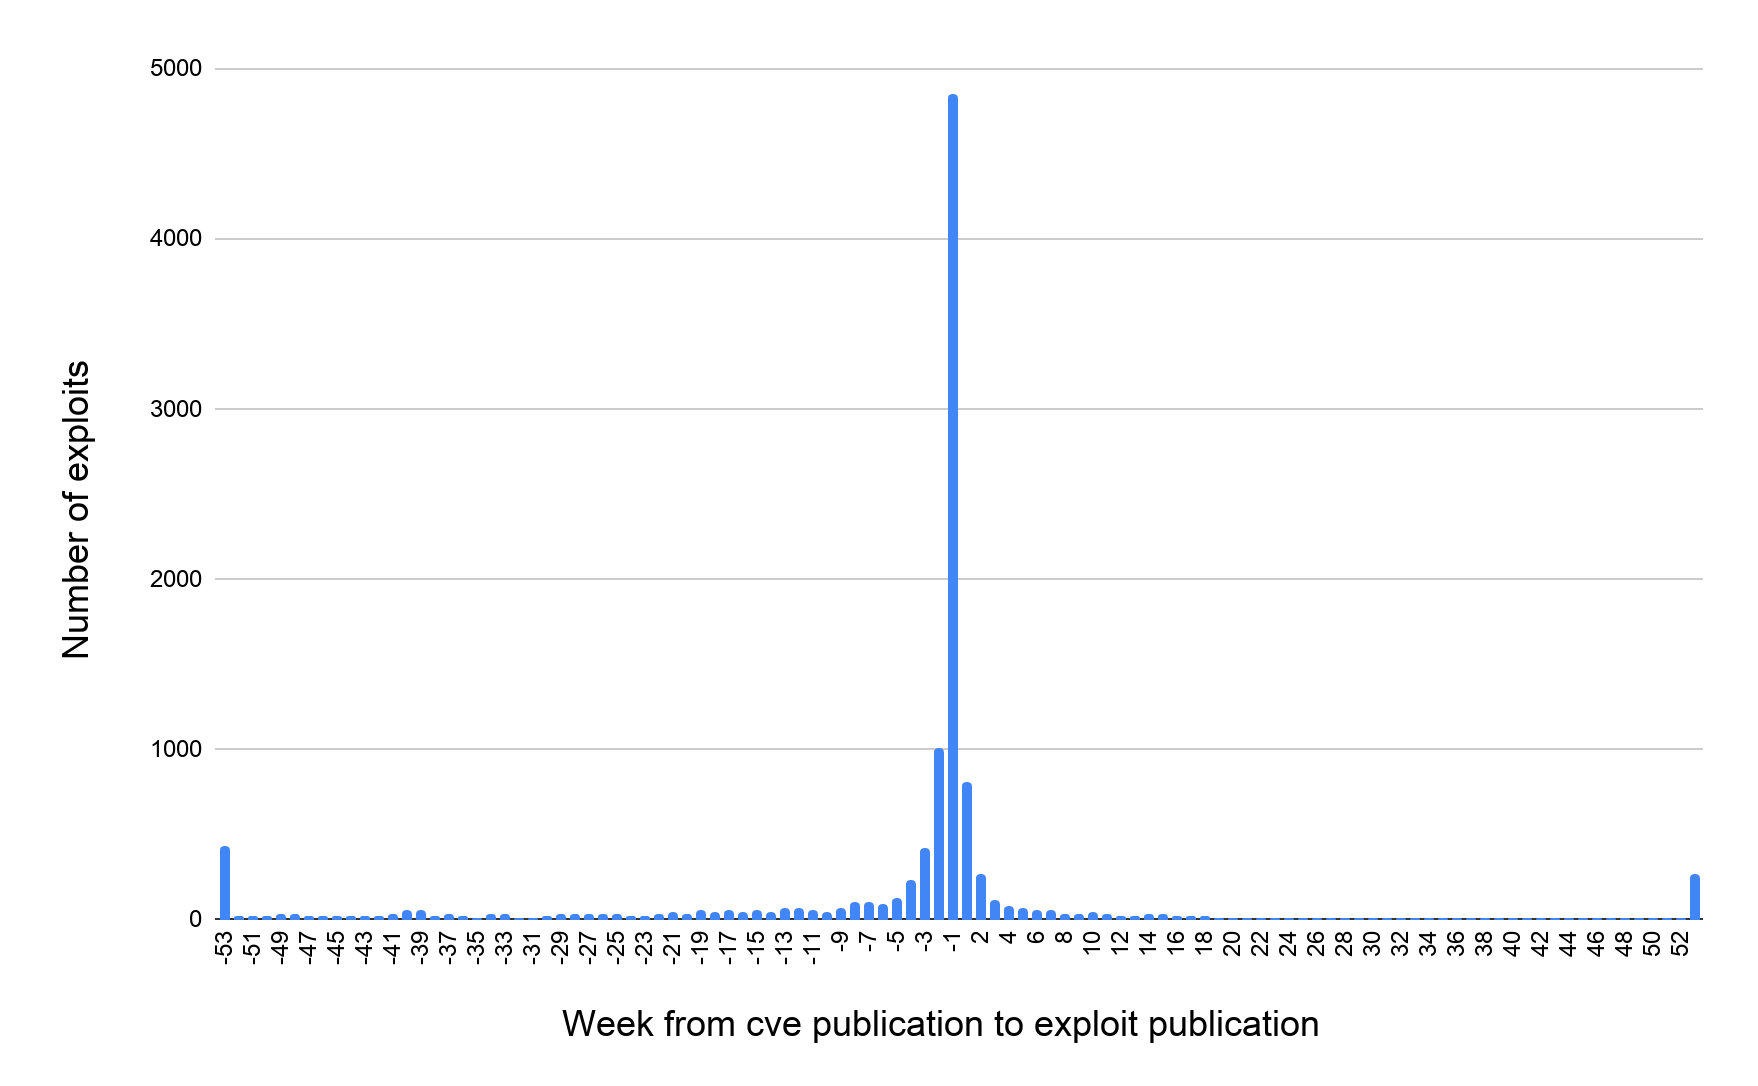 Number of exploits (y-axis) vs. Week from cve publication to exploit publication (x-axis)